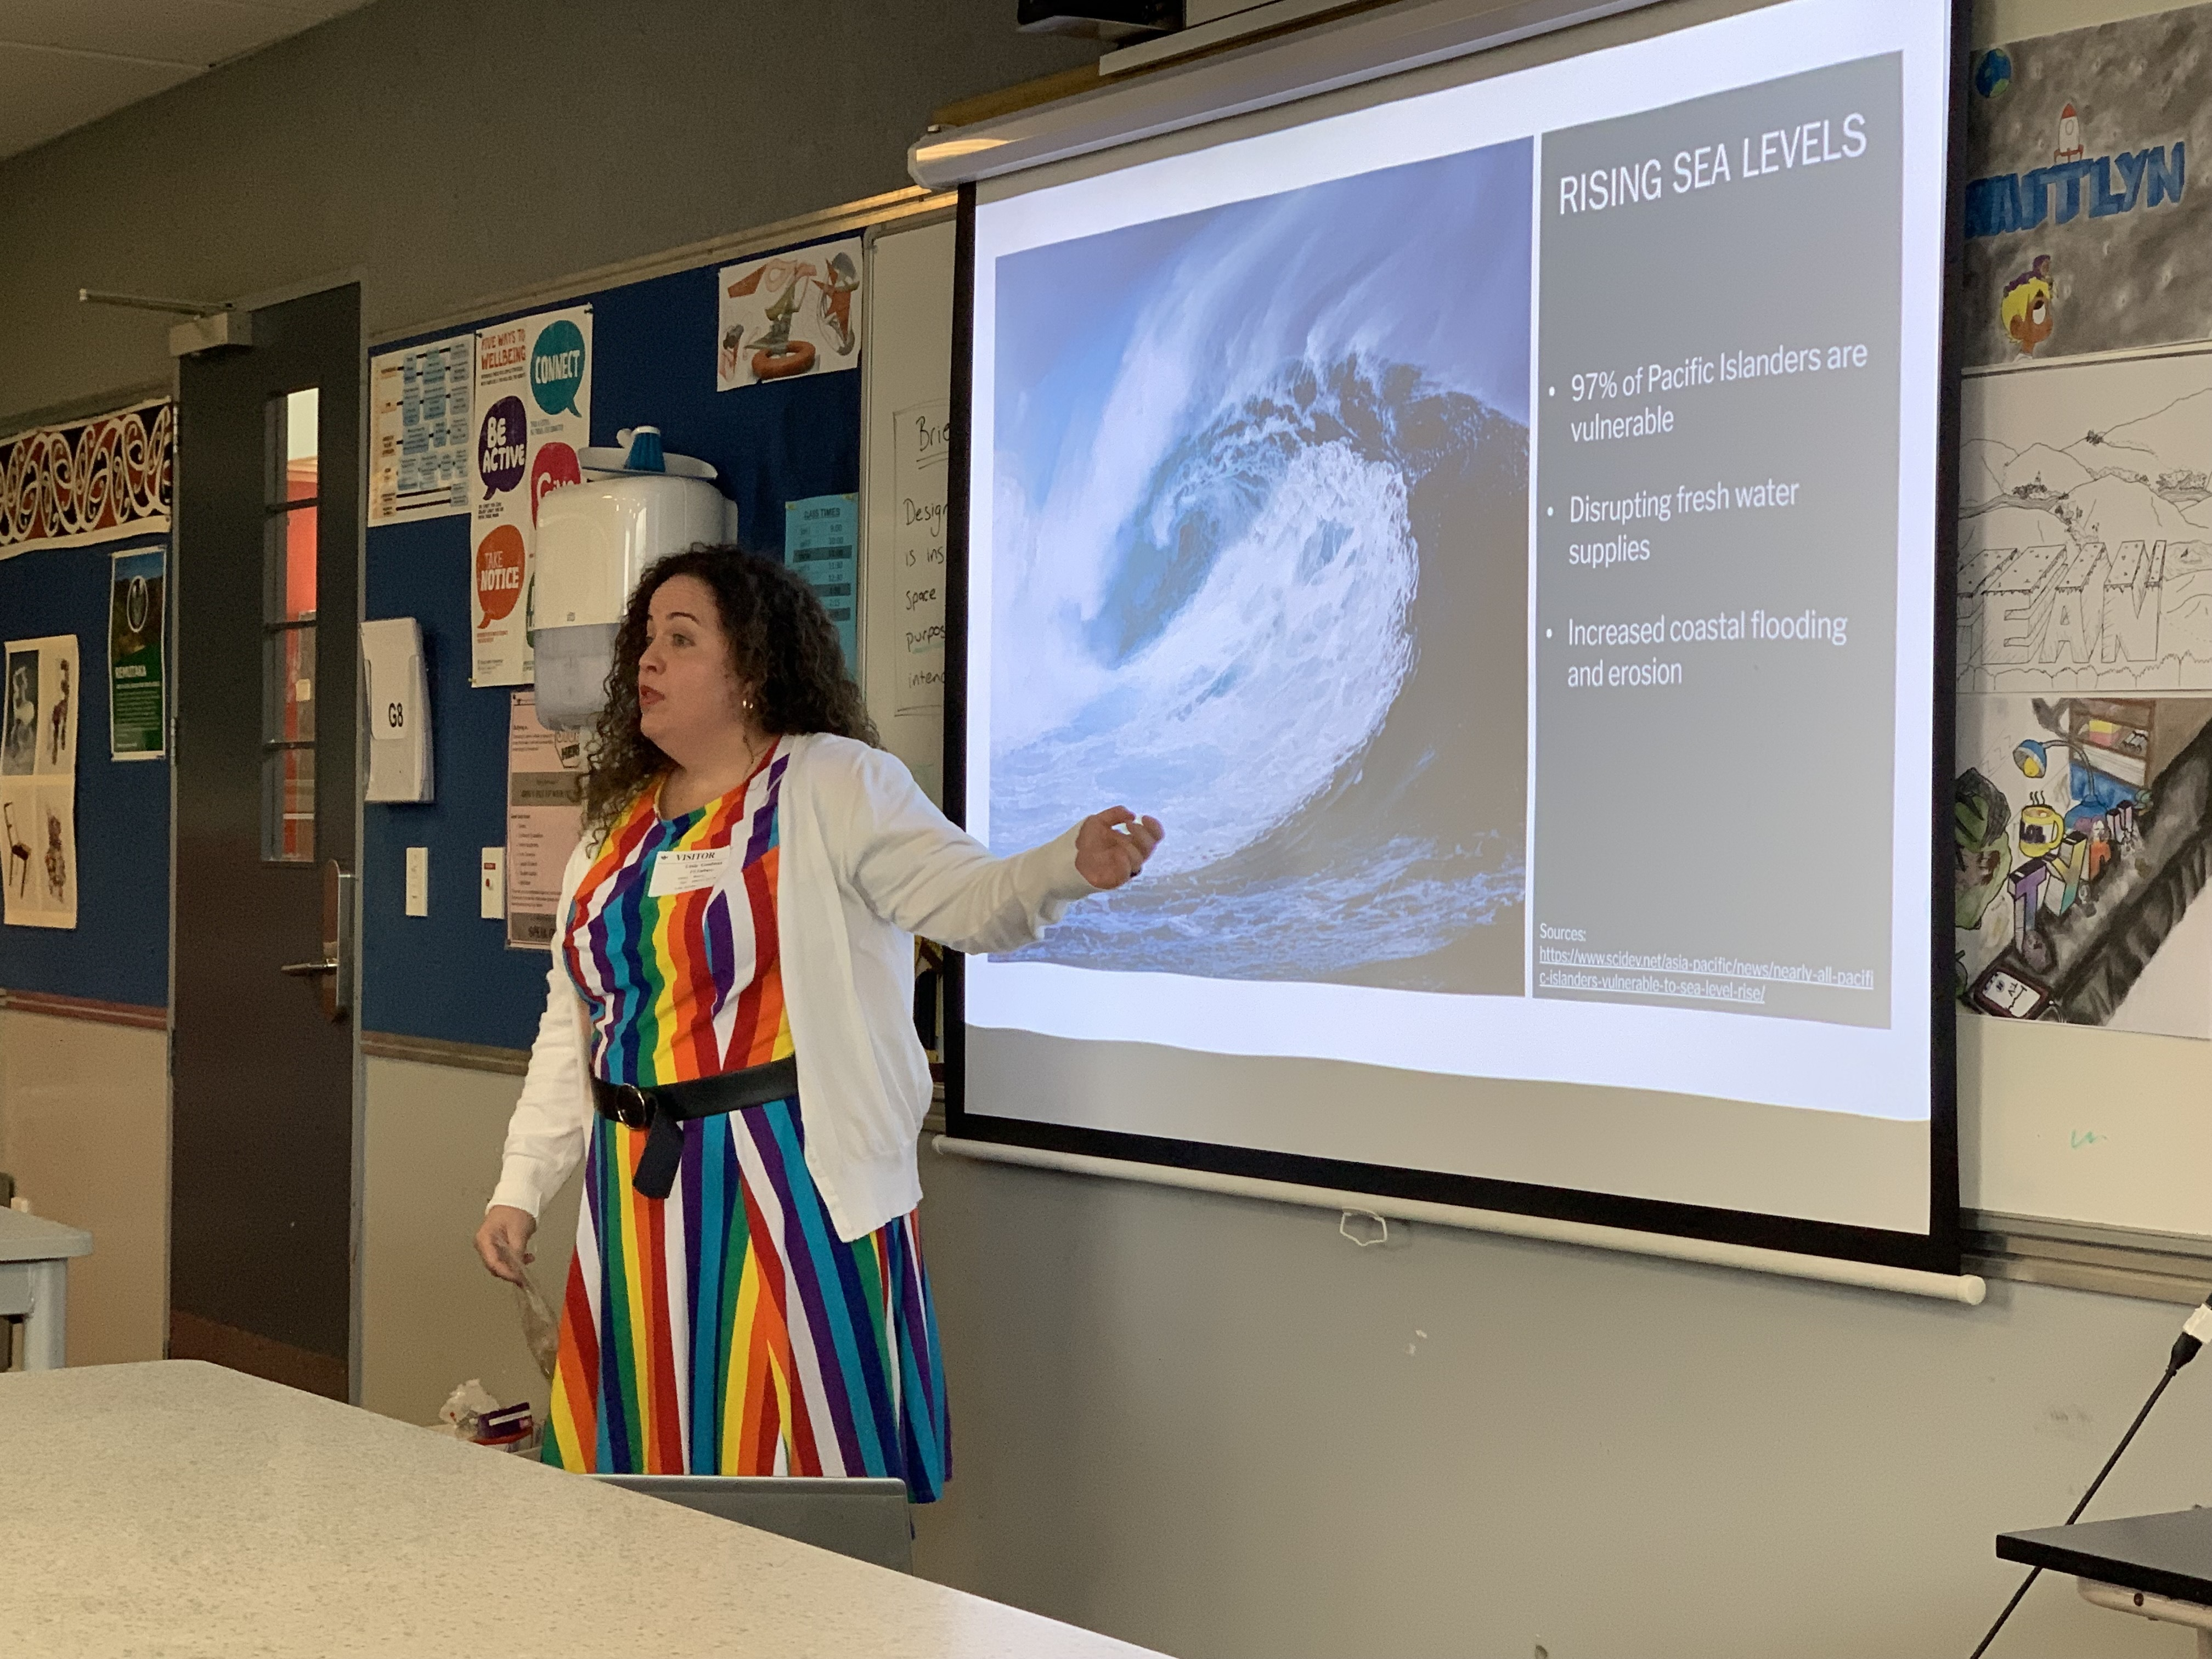 Public Affairs Officer, Leslie Goodman, speaking to a grup of students at Lower Hutt High School. Photo credit: U.S. Department of State.